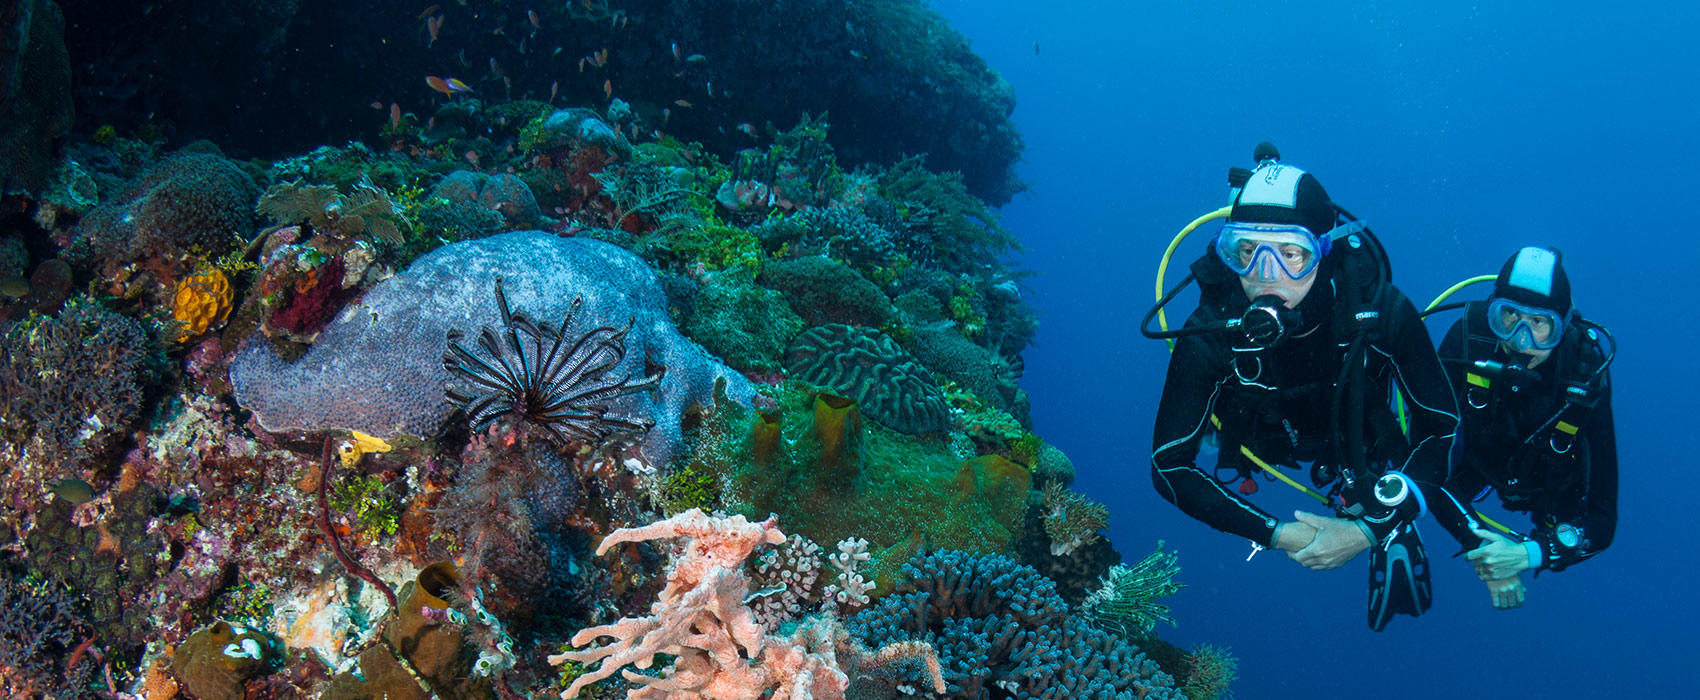 From Snorkelling to Scuba Diving